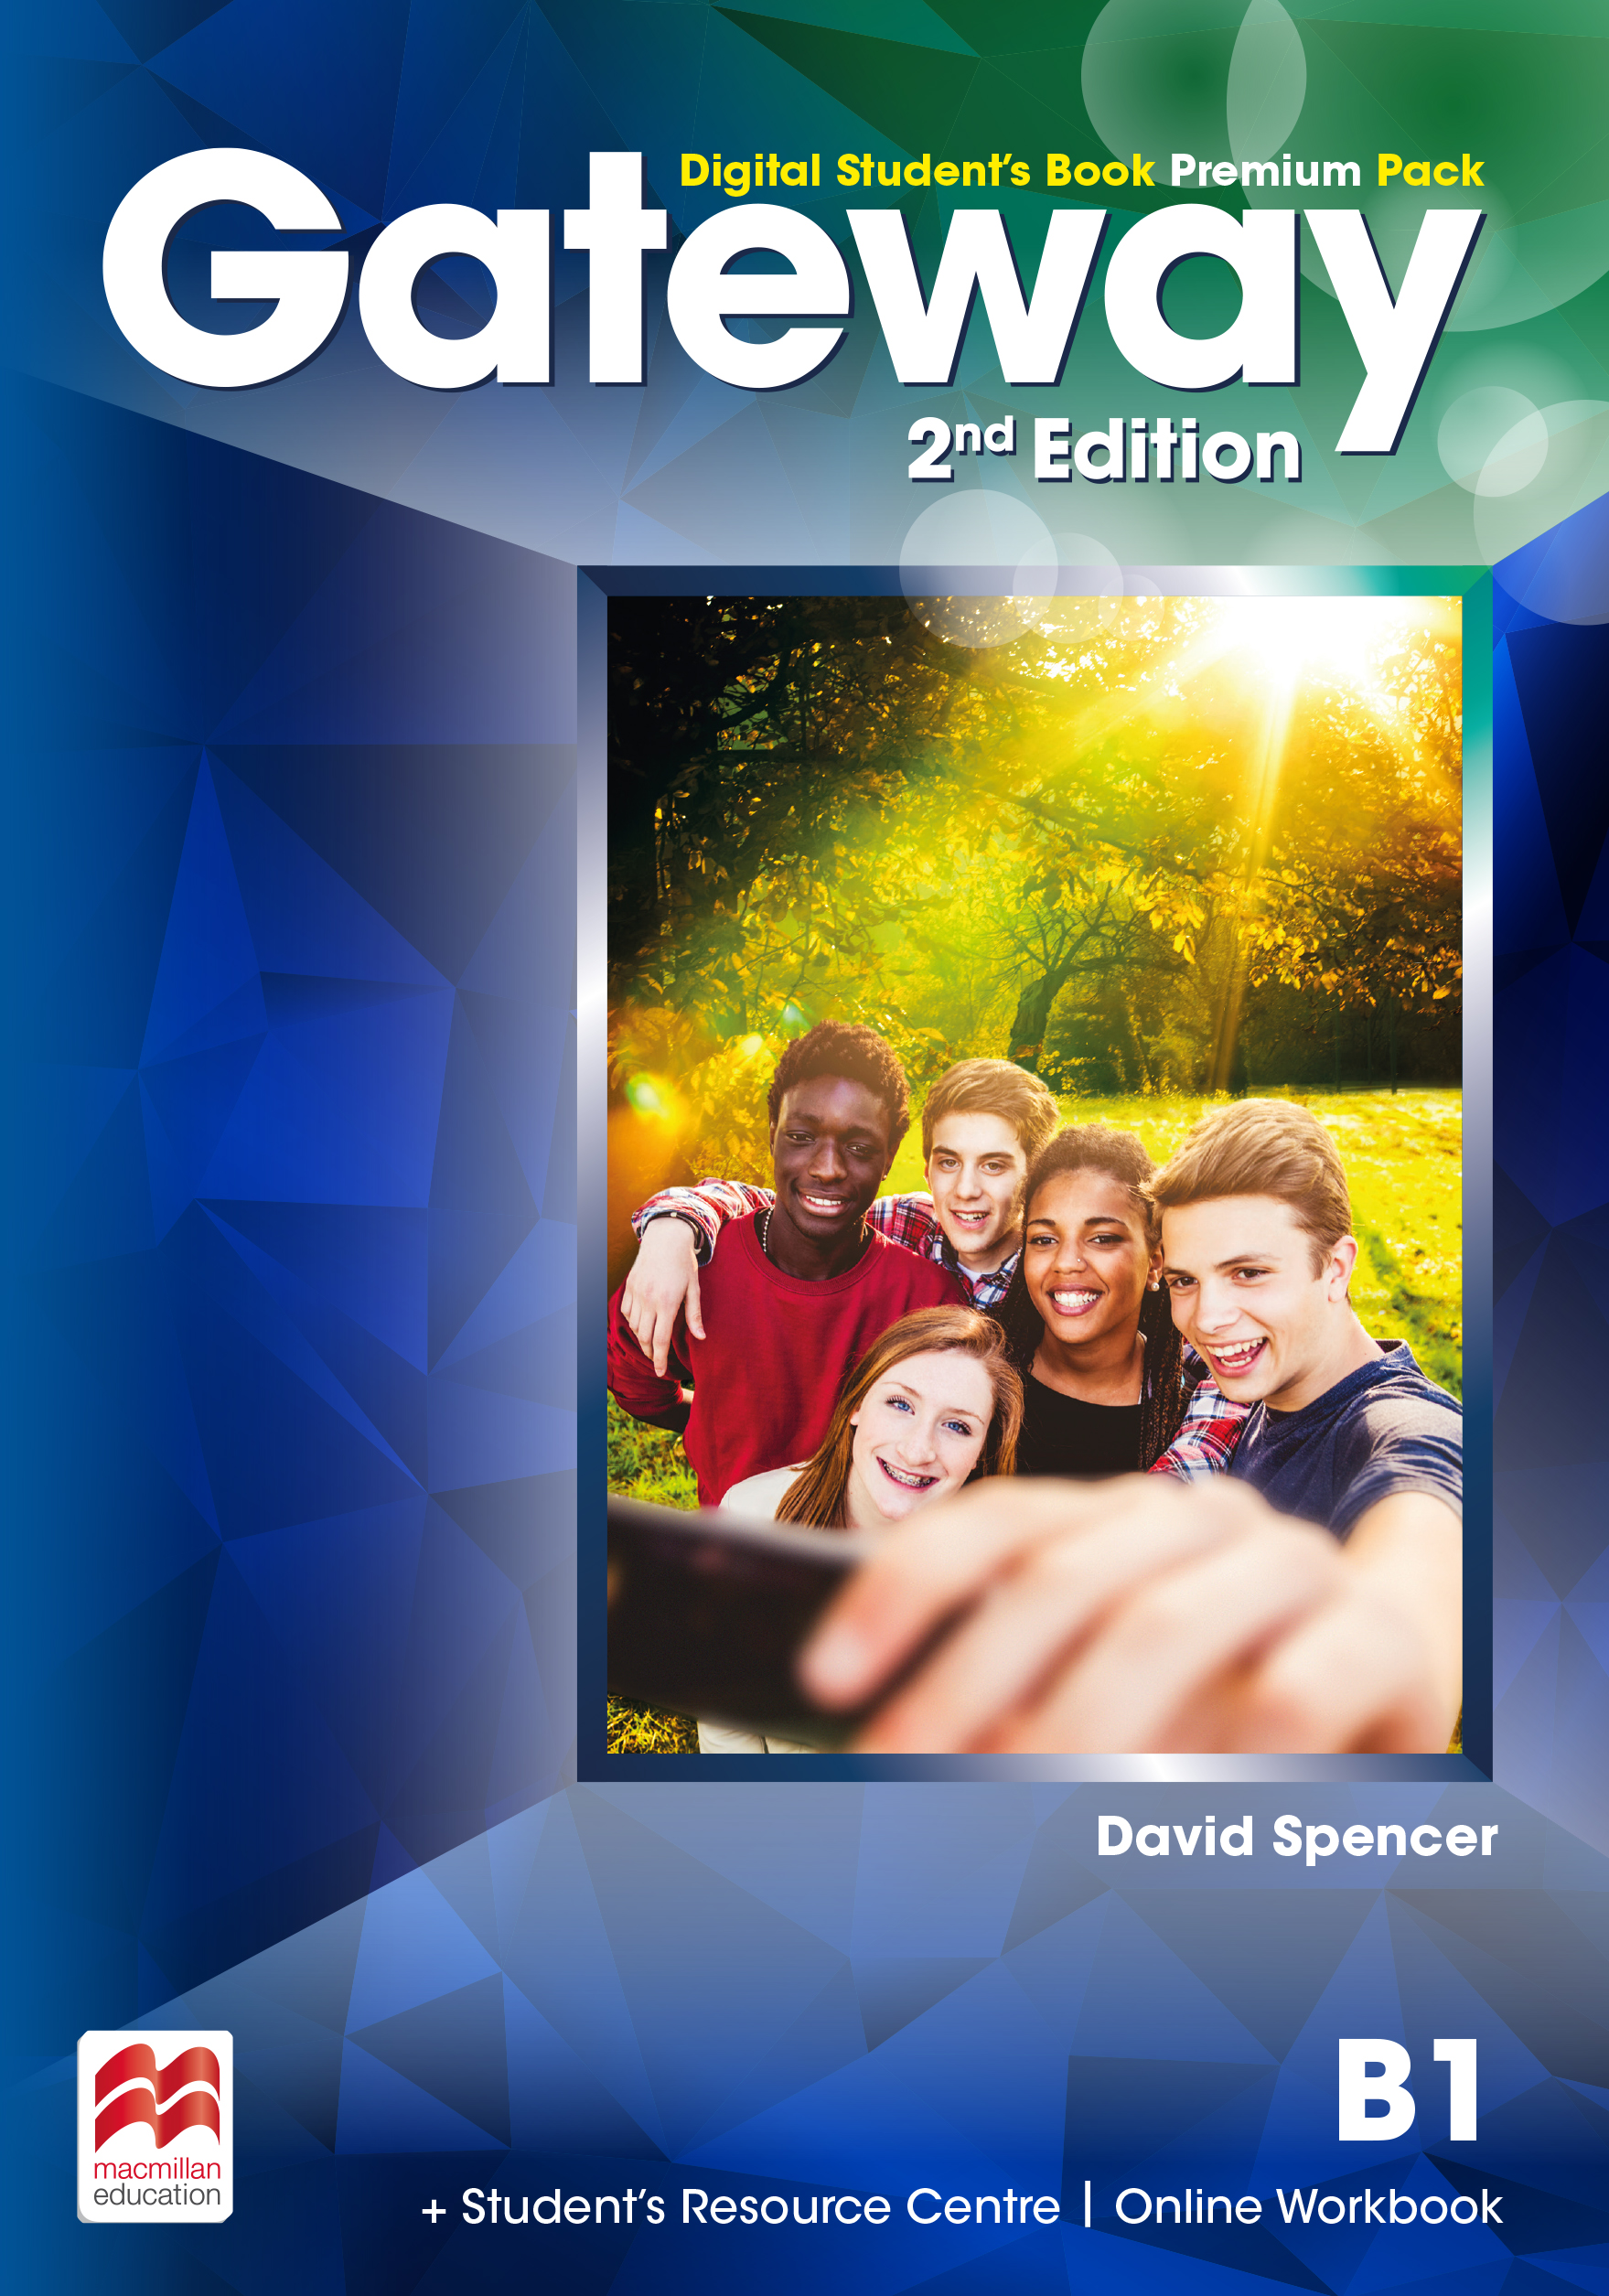 Gateway 2nd Edition B1 Digital Student